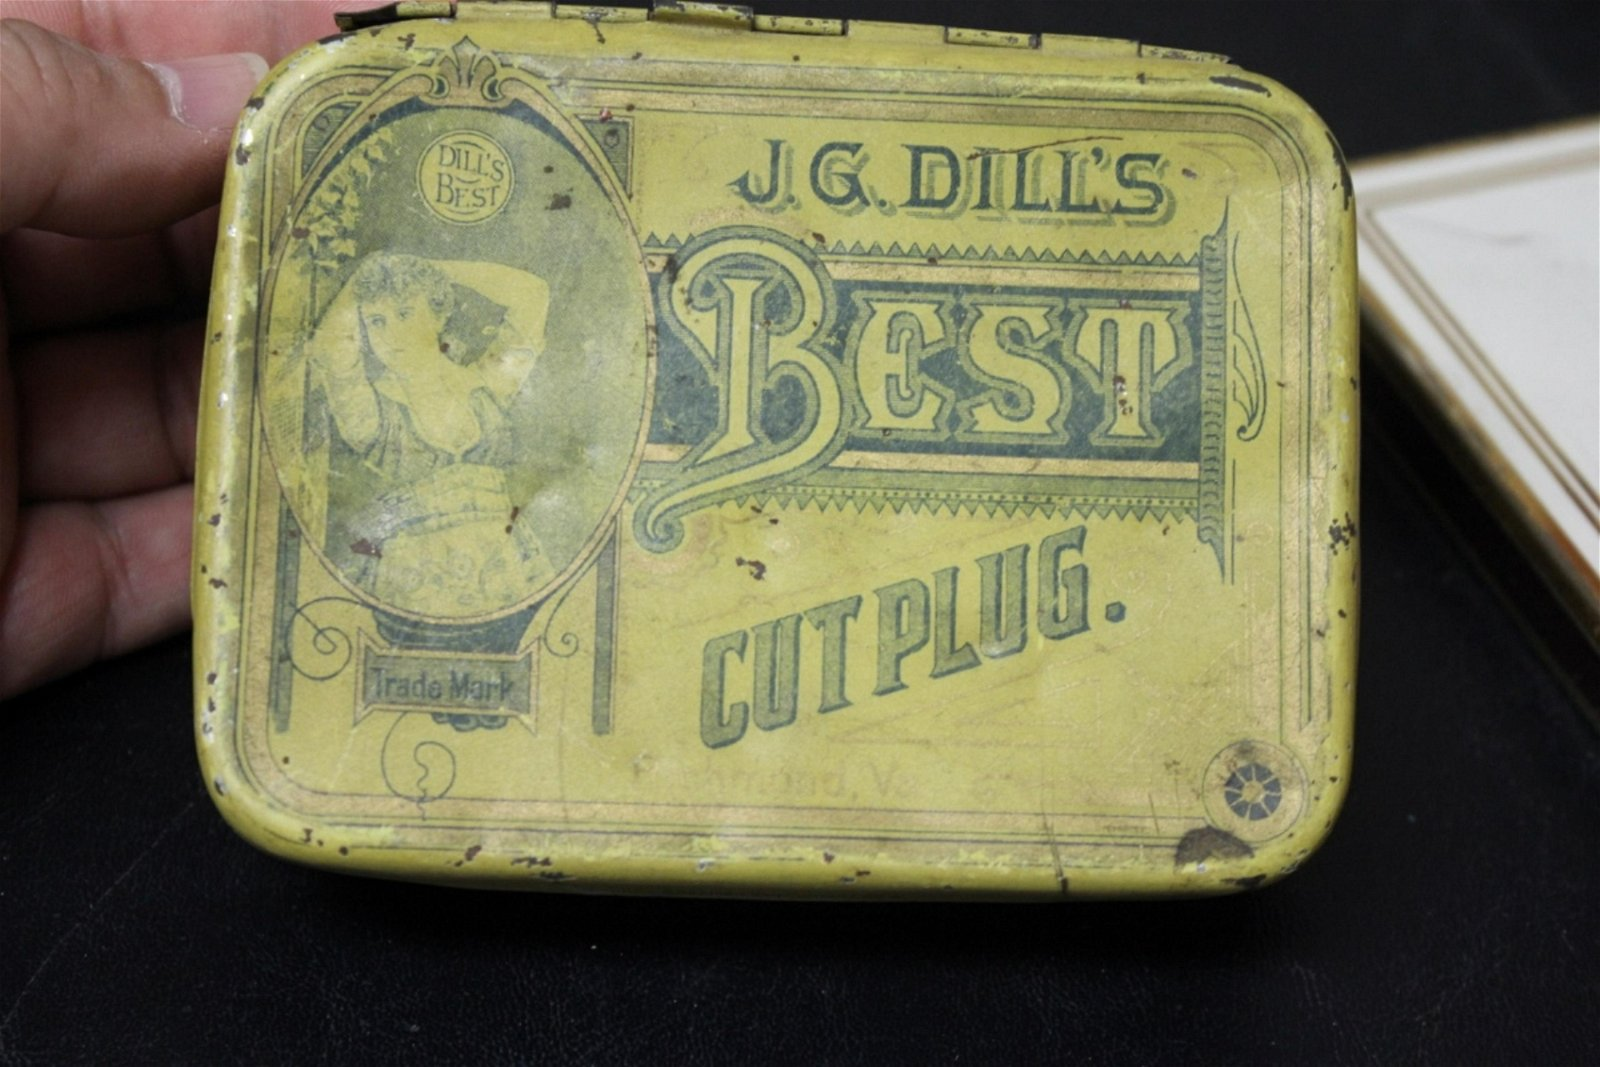 A J.G. Dill's Best Cut Plug Tobacco Tin